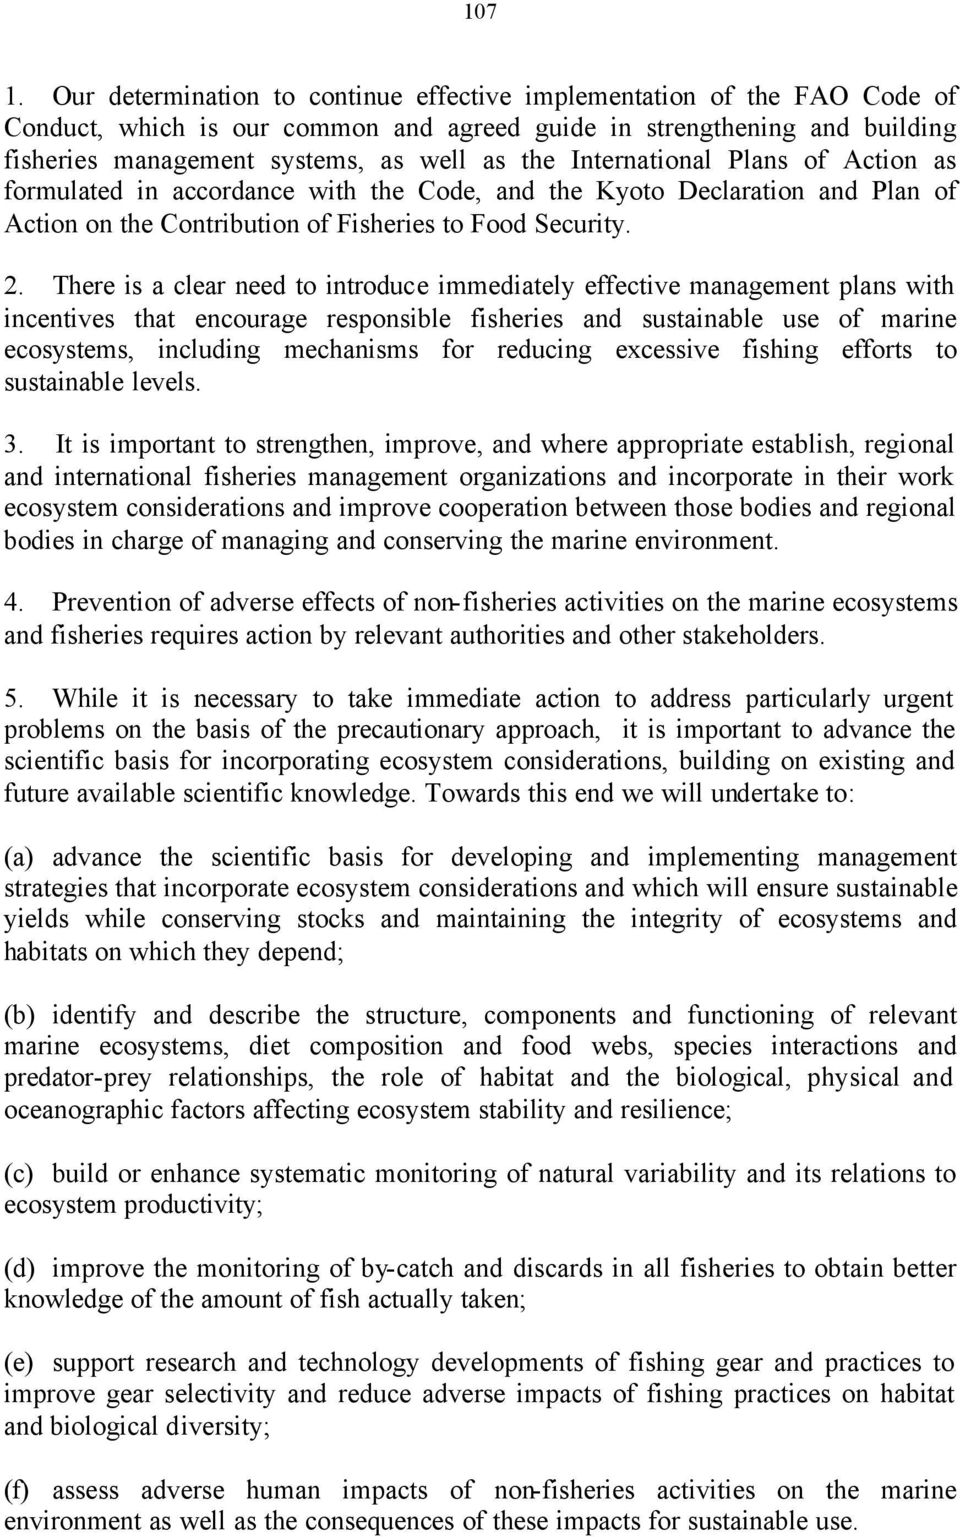 International Plans of Action as formulated in accordance with the Code, and the Kyoto Declaration and Plan of Action on the Contribution of Fisheries to Food Security. 2.